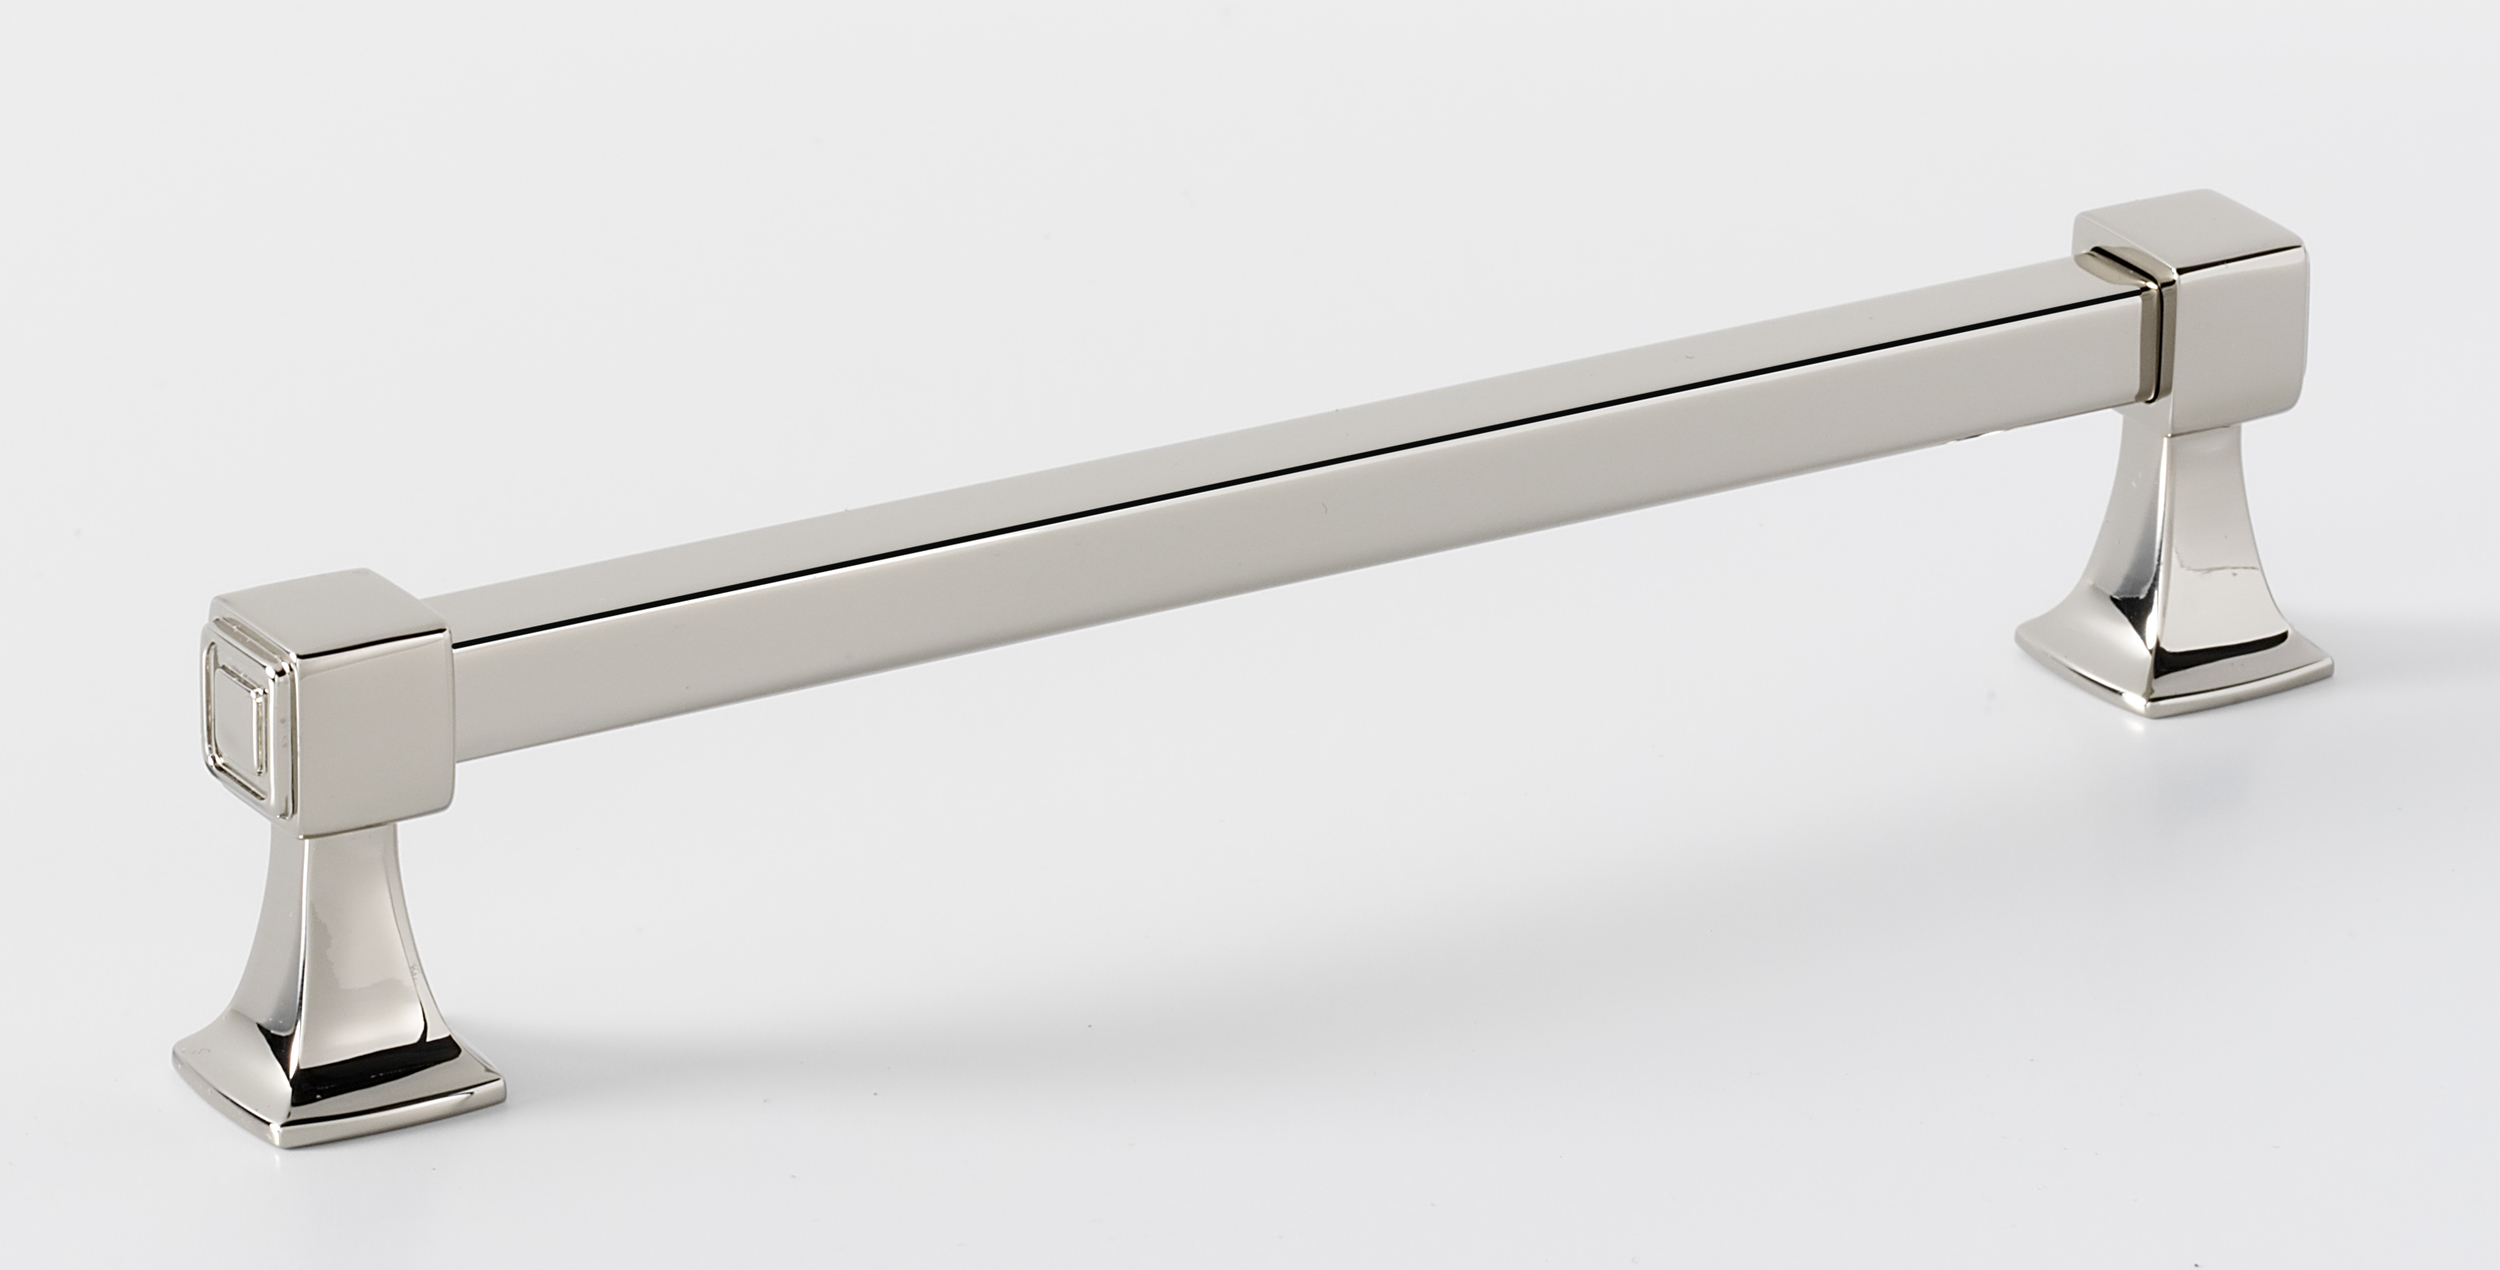 106A985-6-PN Square handle 6in ctc shown in polished nickel, available in six finishes.